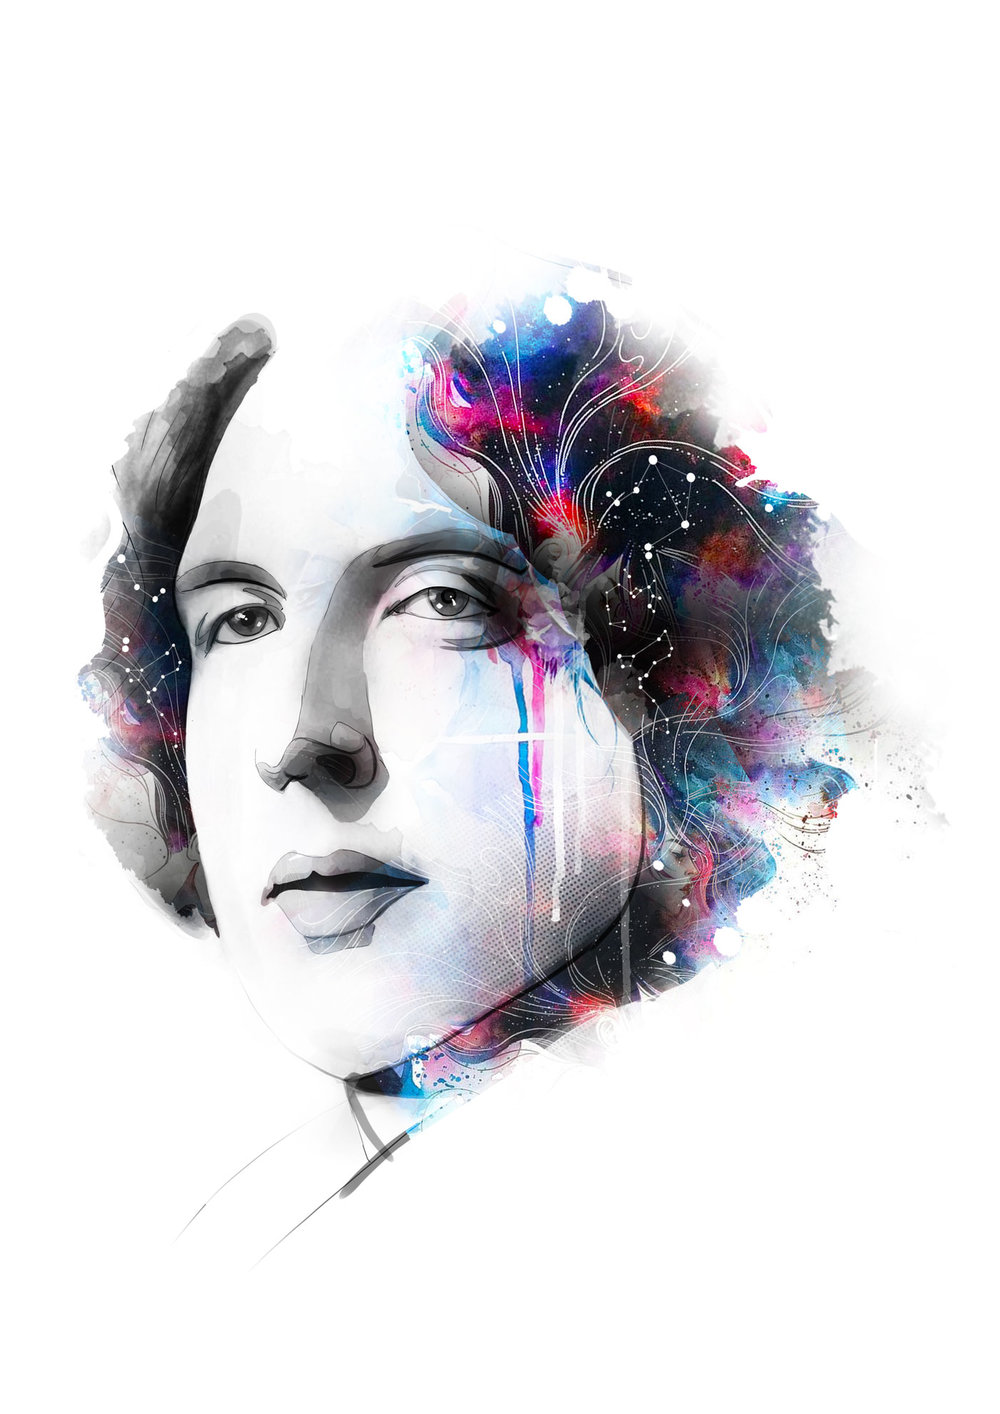 Reddin-designs-Oscar-Wilde-detailed-design-lo-res.jpg